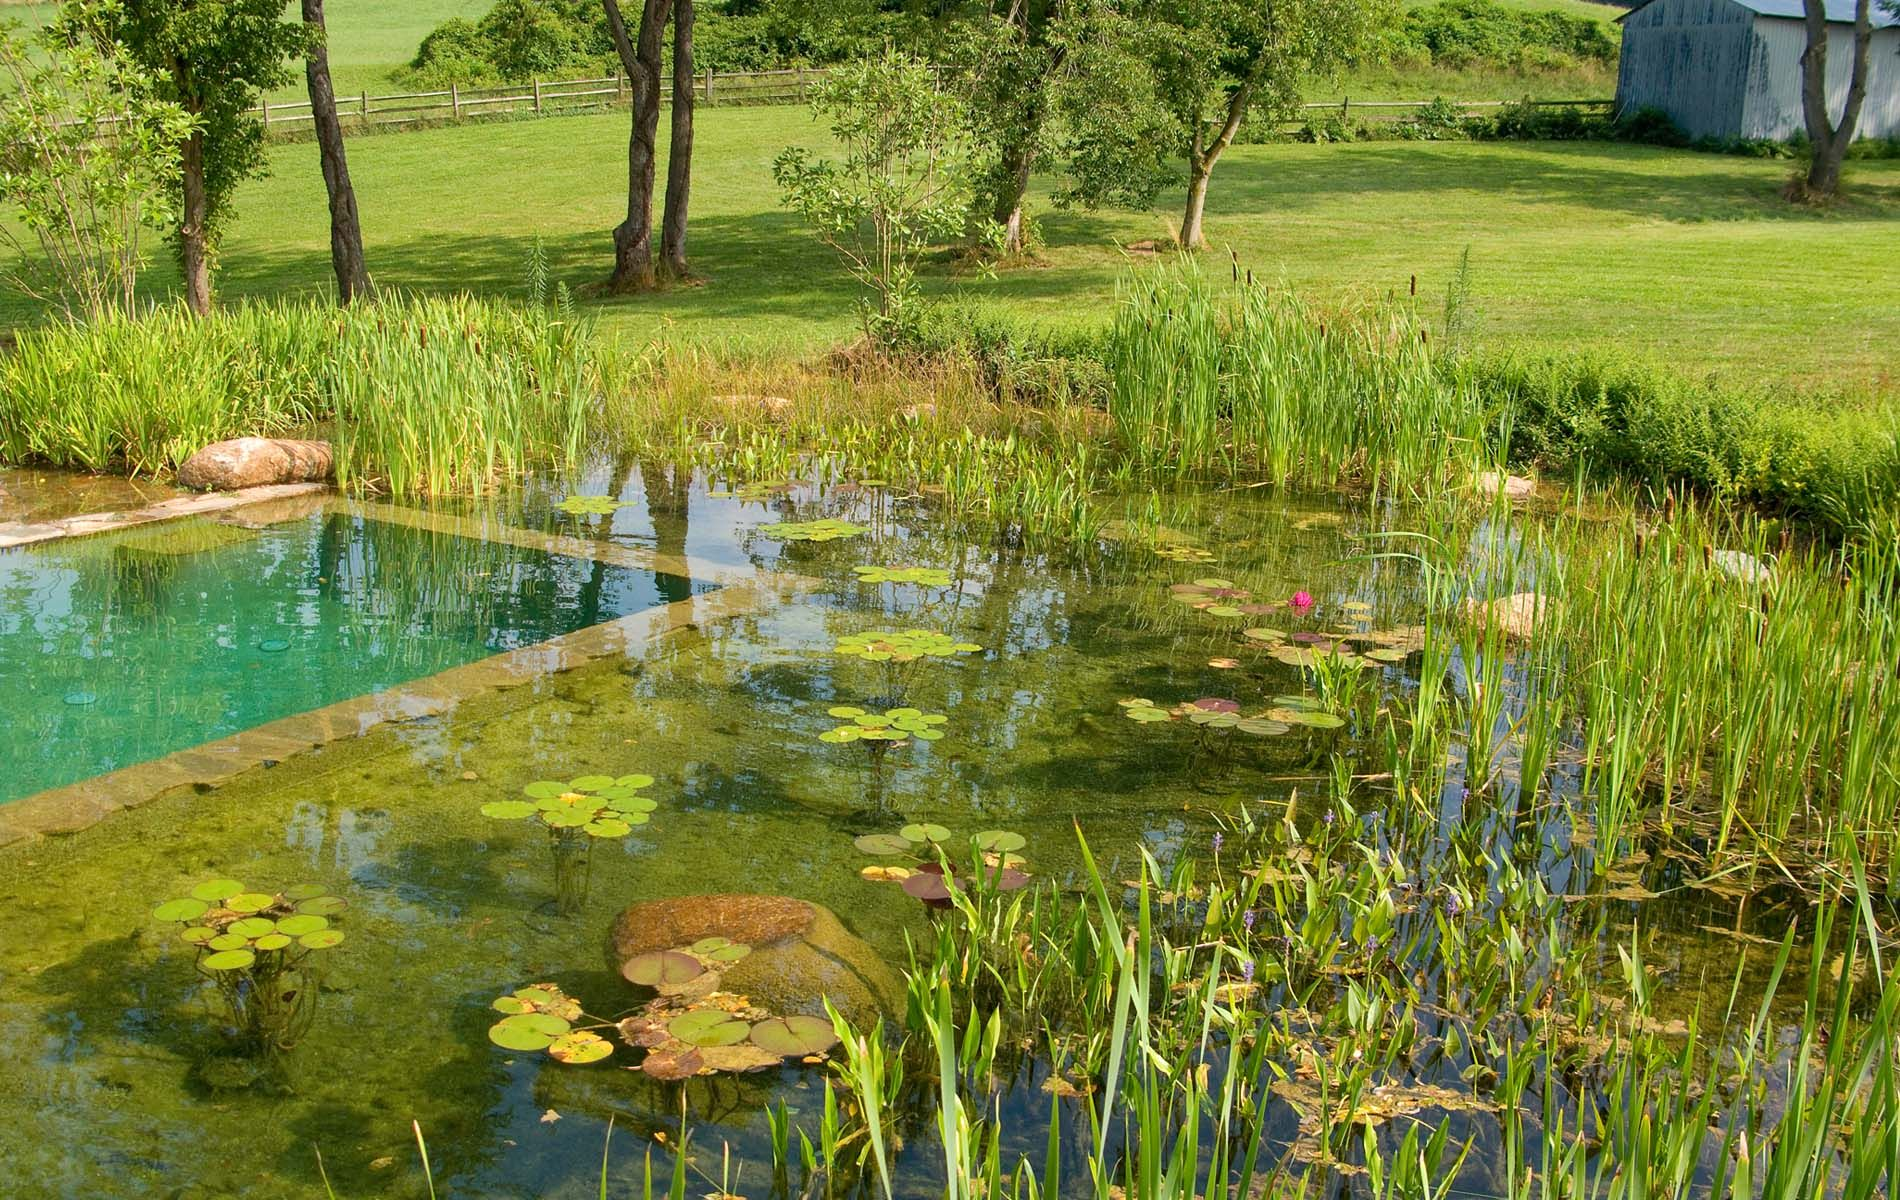 Building a natural swimming pool - A Natural Swimming Pool Instead Of Dumping Loads Of Chemicals Into Pool Water Can Create An Organic Piece Of Art That Is To Say Build A Pool Which Can